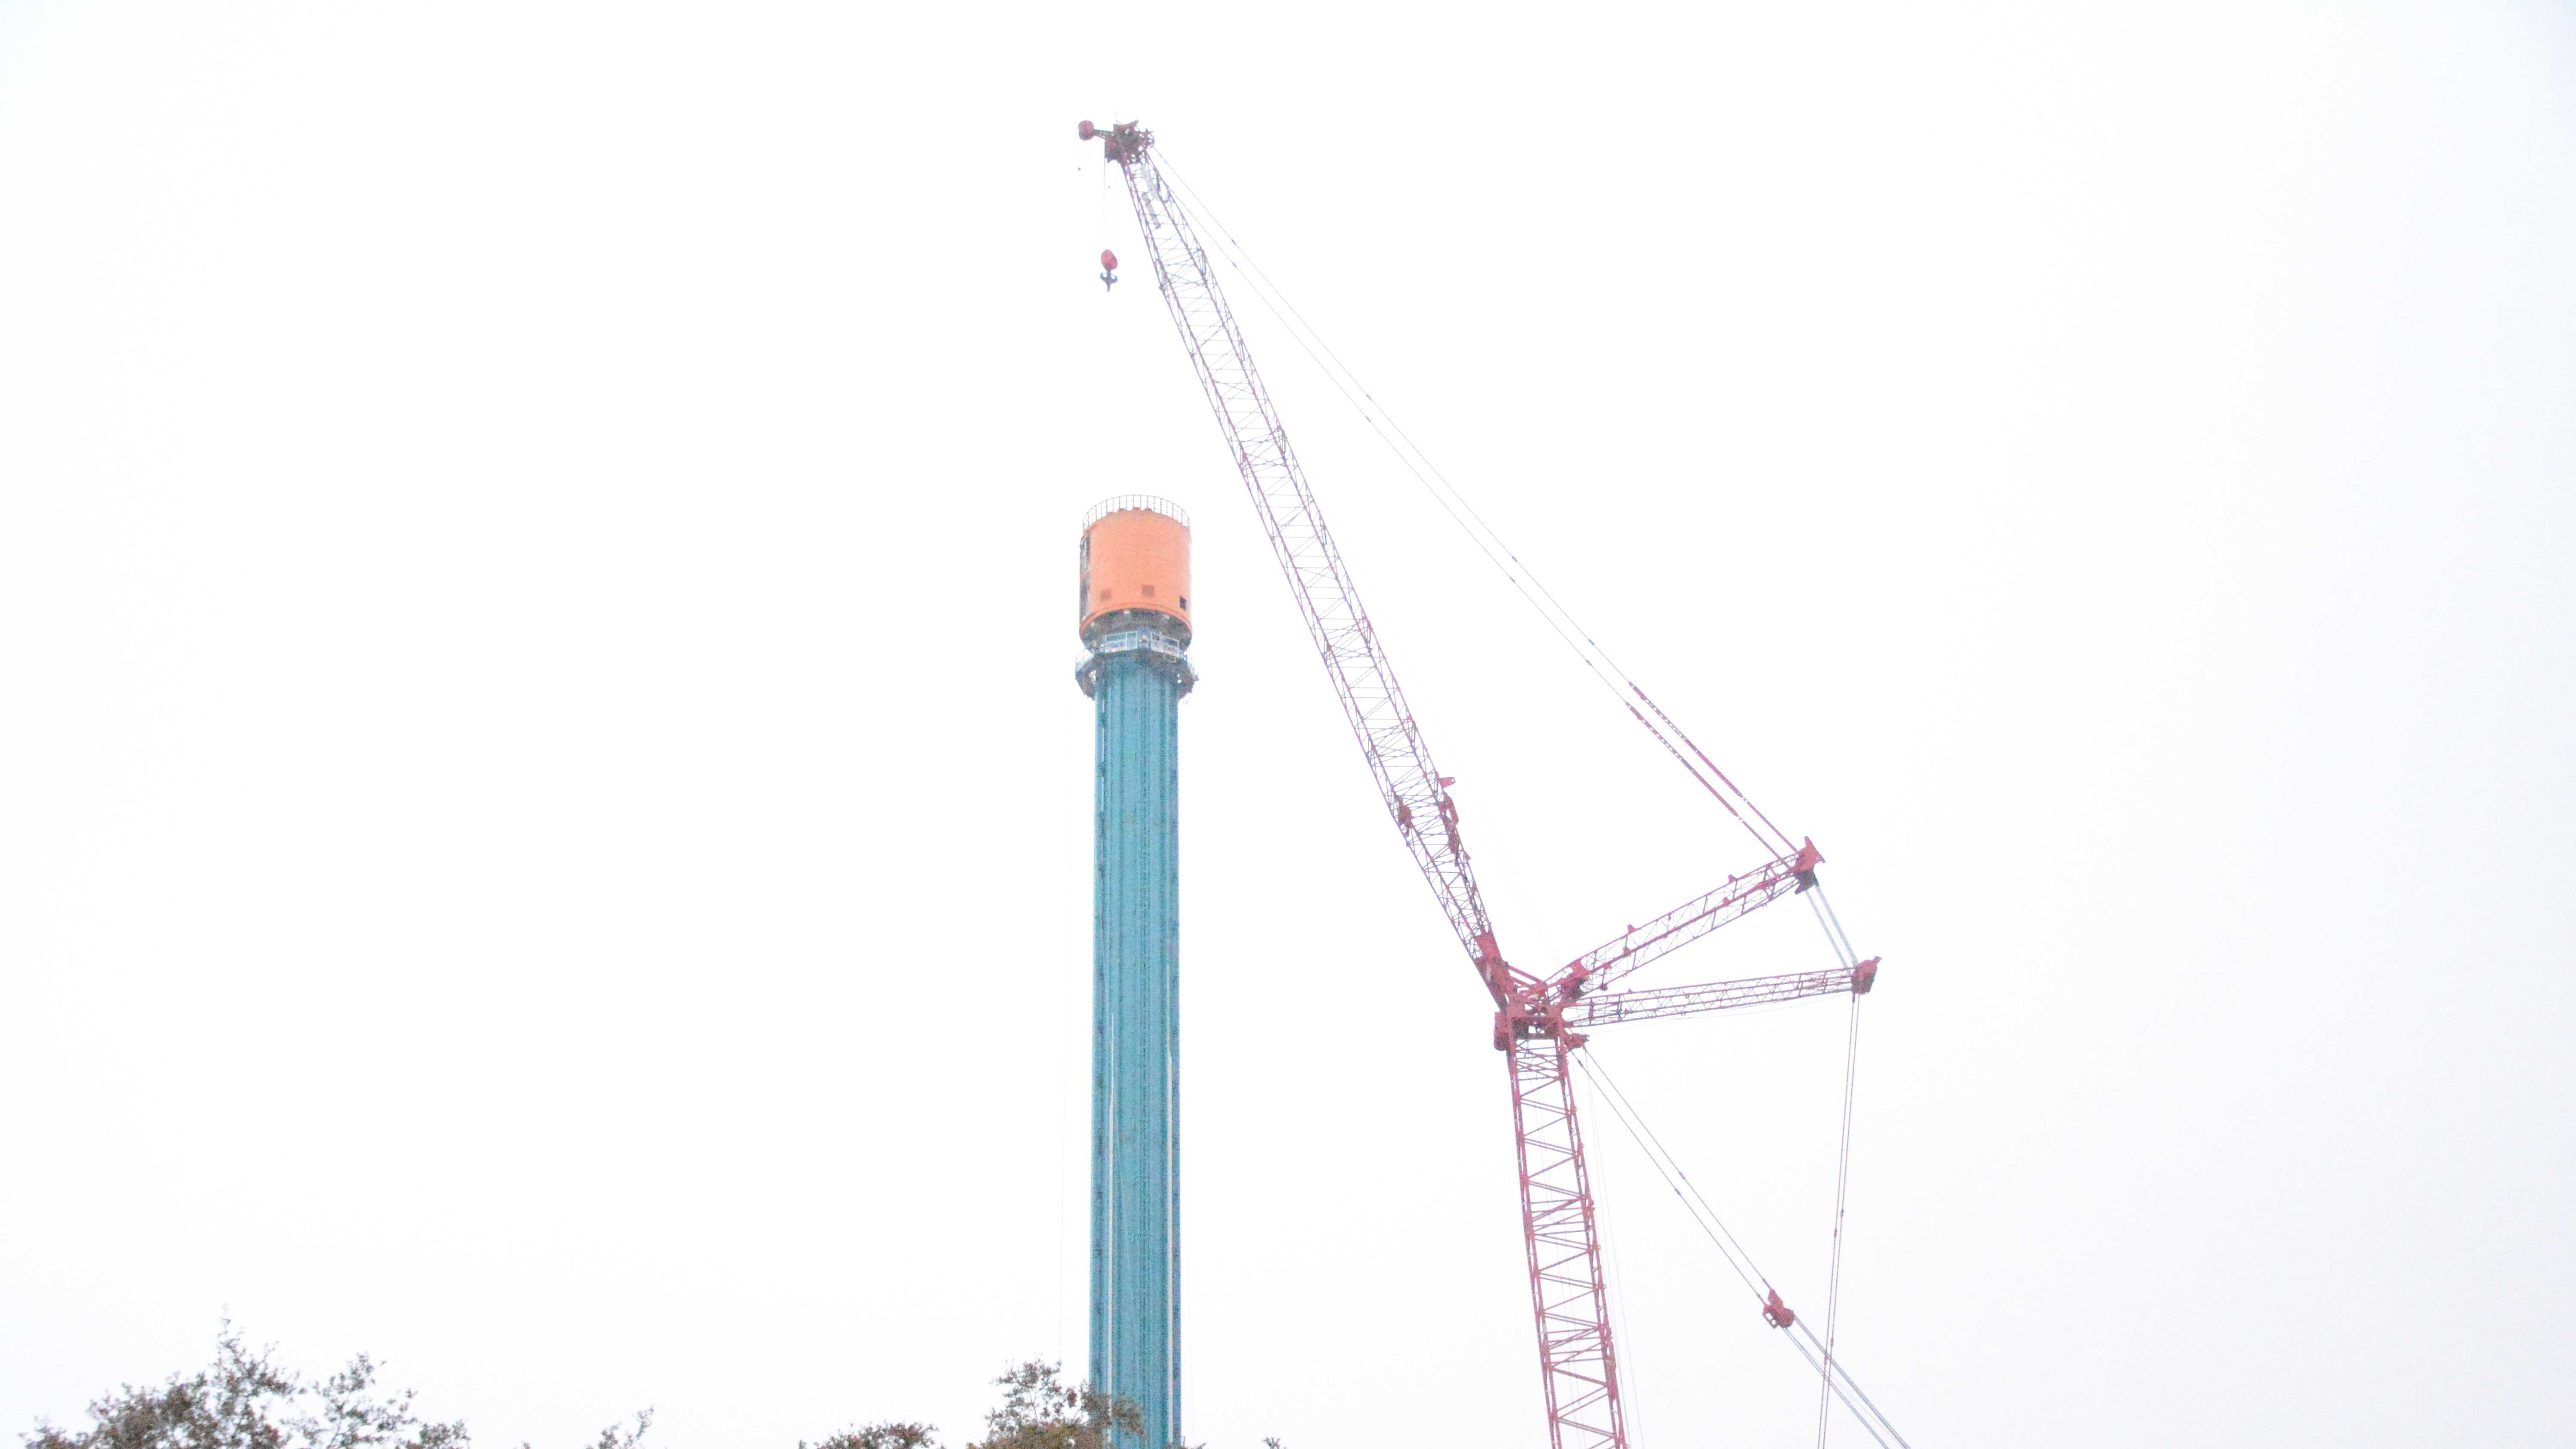 """Busch Gardens' new ride, """"Falcon's Fury,"""" is currently under construction. The ride will open this spring."""